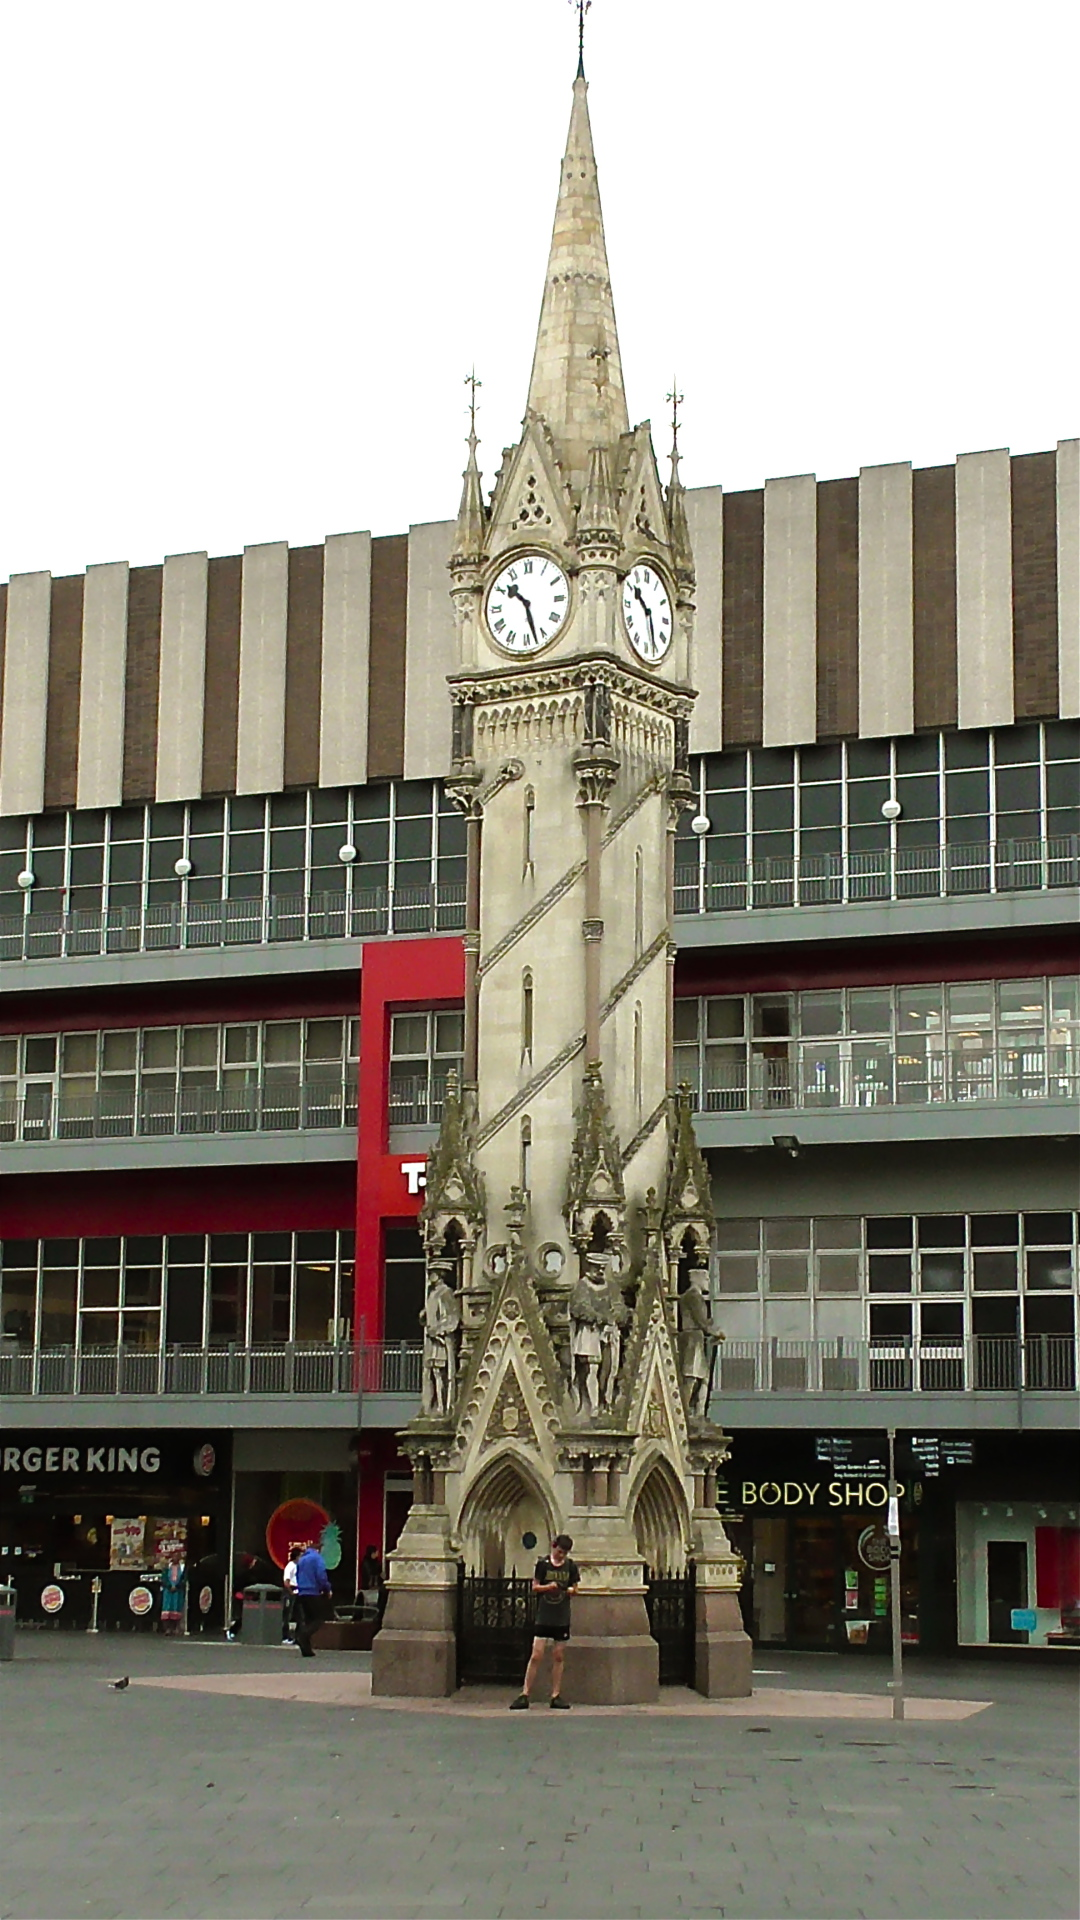 Clock Tower, Leicester city centre